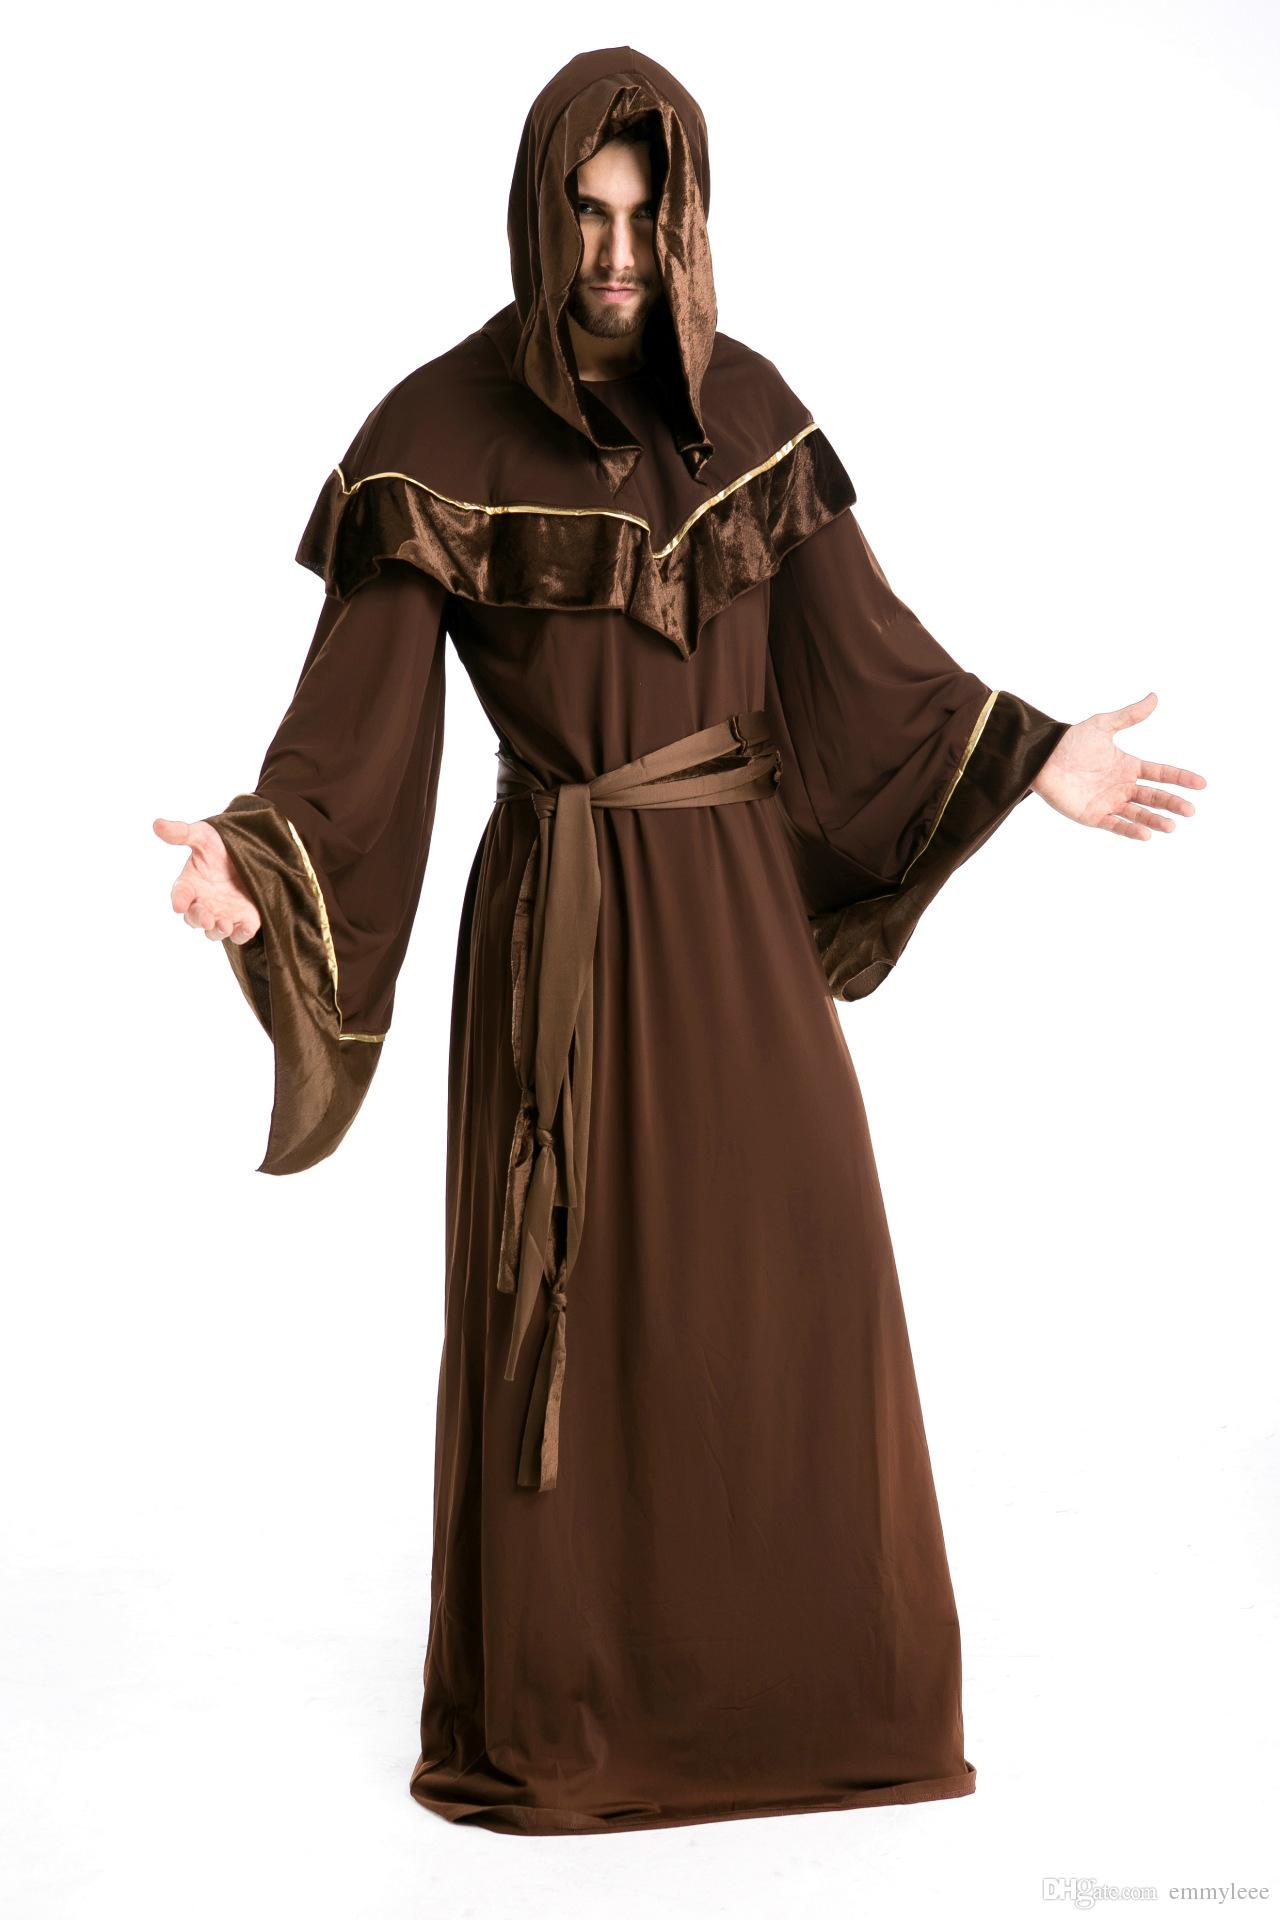 black devil costume gothic wizards european religious man halloween party cost costume stage costume cosplay halloween day dhl taoist mans costumes